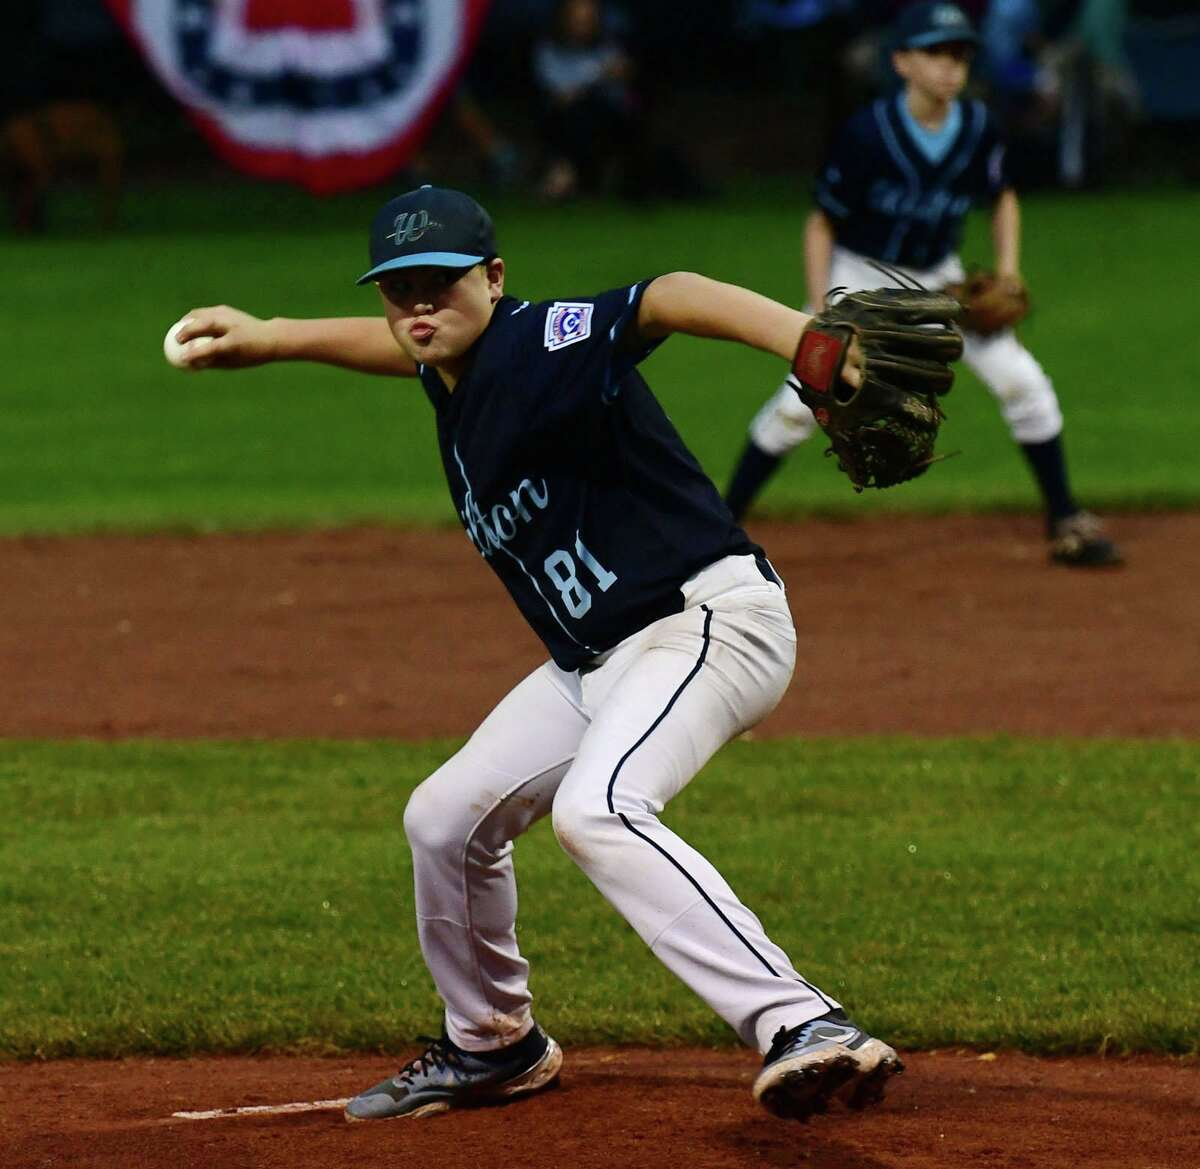 Wilton's Colton Smith throws from the mound as Wilton takes on North Haven in the section 1 Little League baseball final Friday, July 23, 2021, at Springdale Field in Stamford, Conn. Wilton advances to state championship series next week.